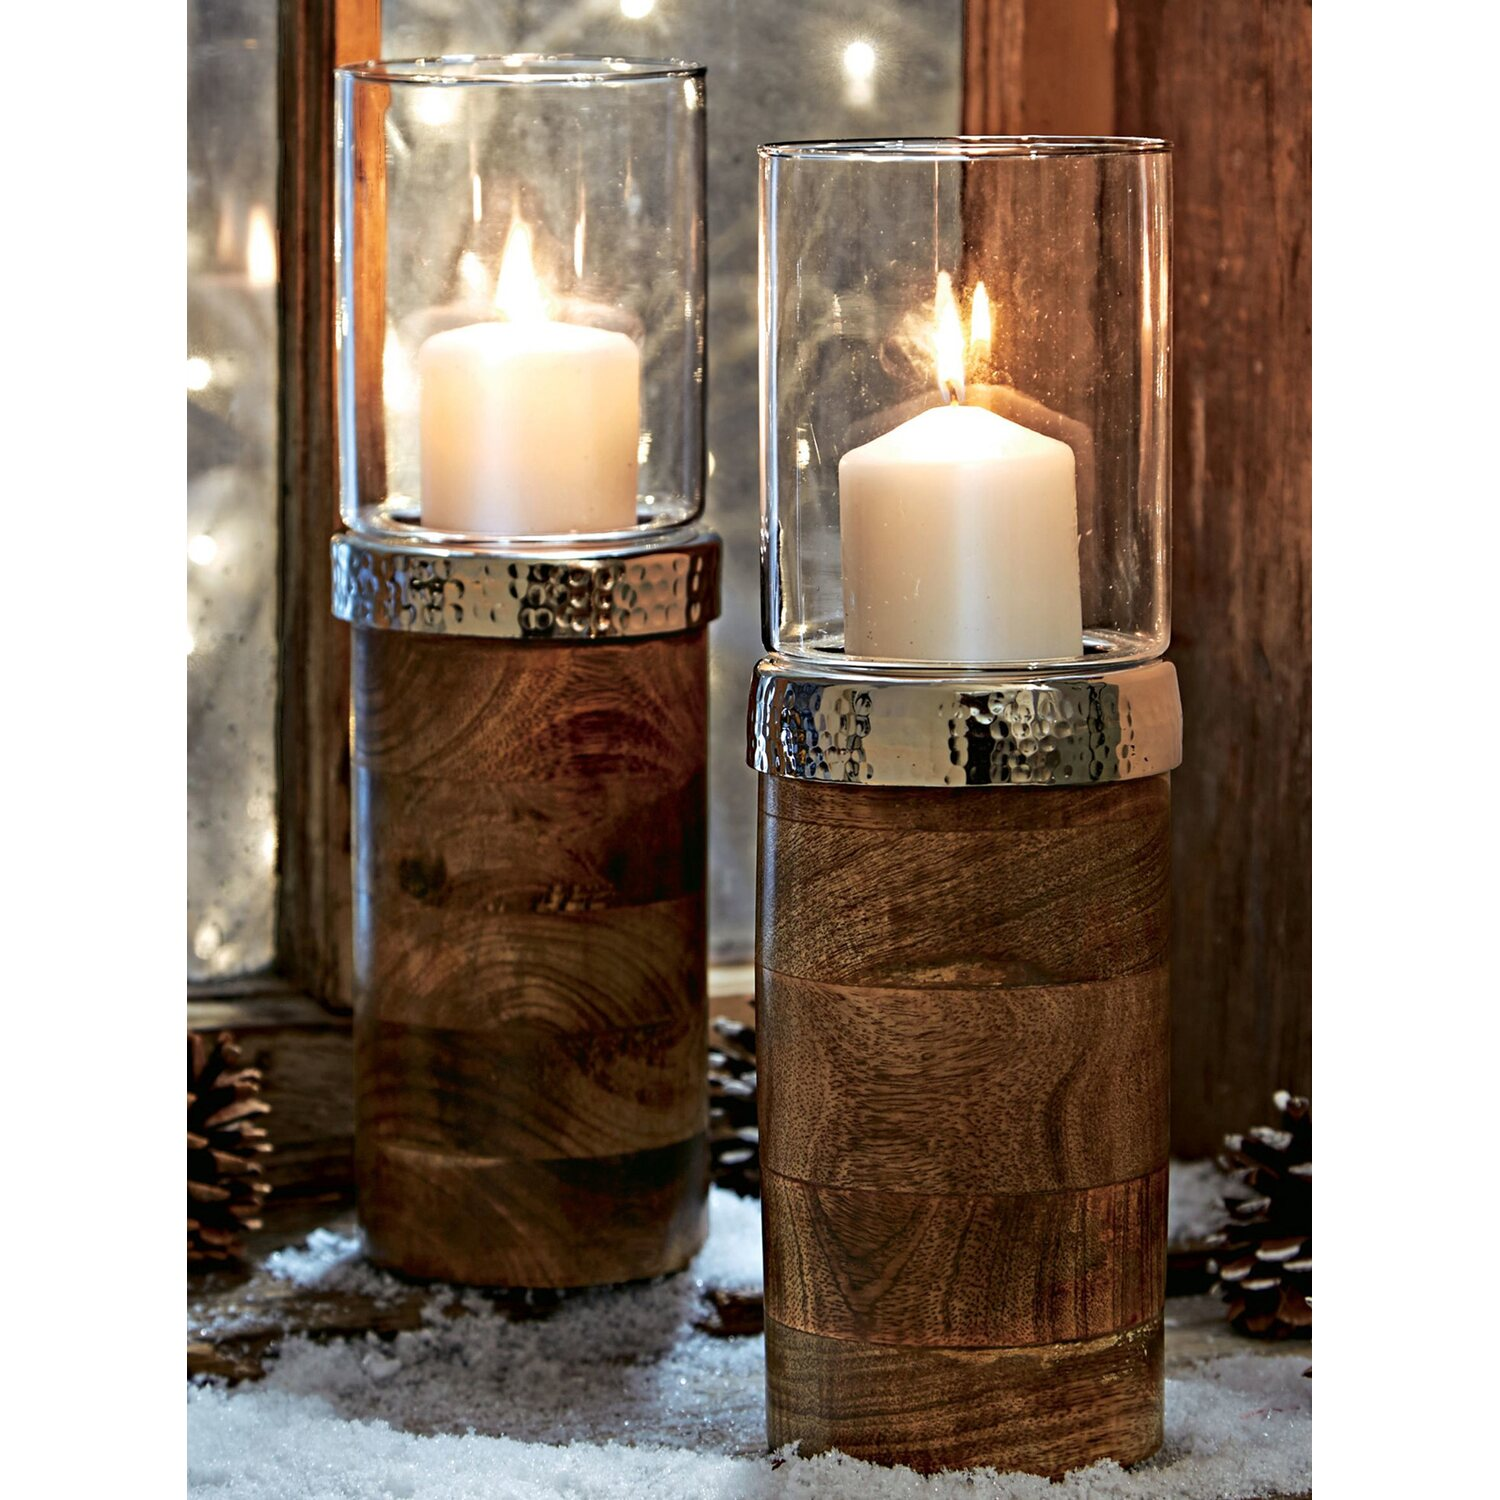 Best Of Home Windlicht Wood Kaufen Bei Obi